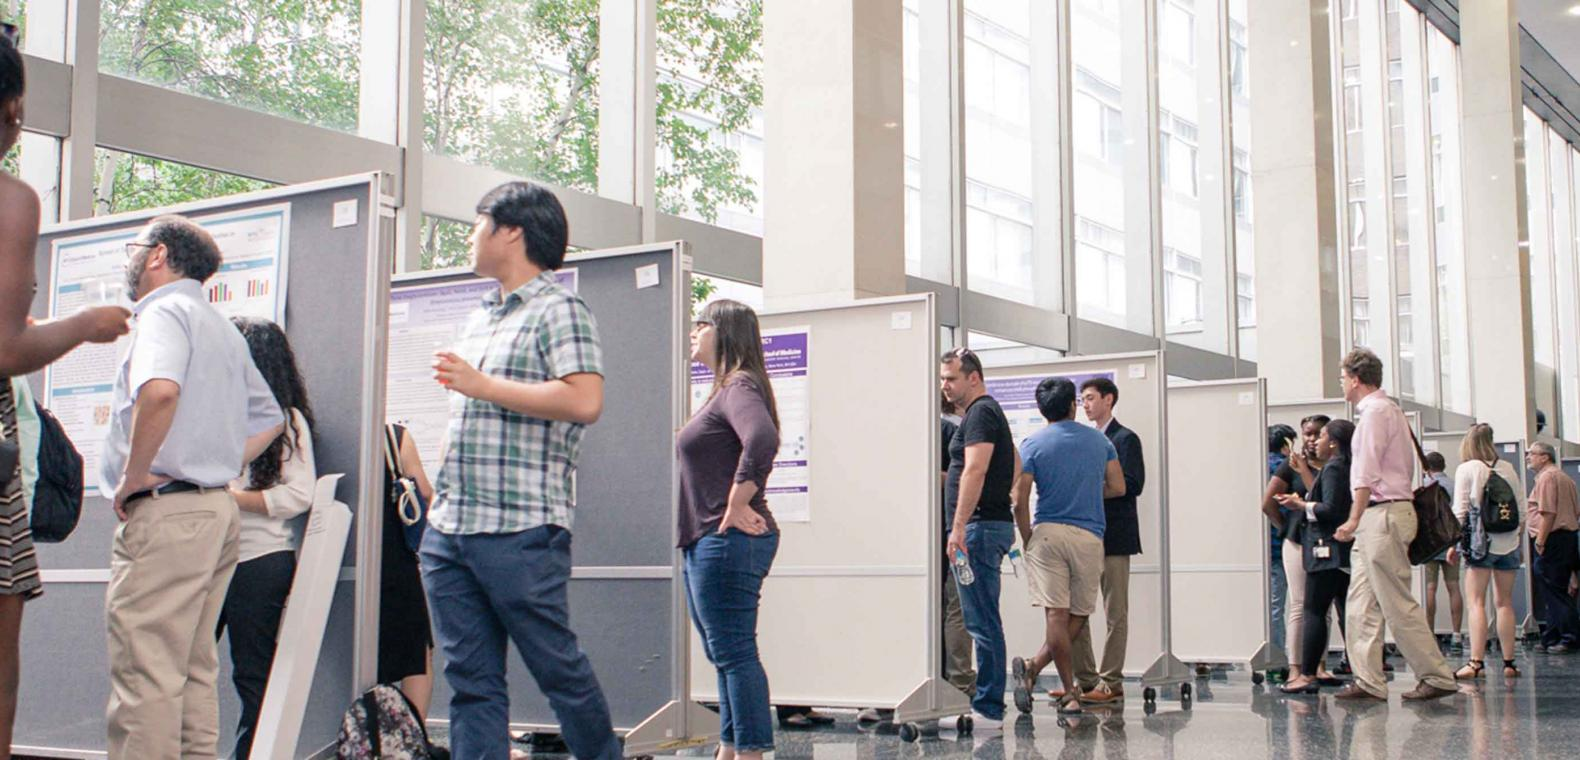 Research Poster Session in Lobby